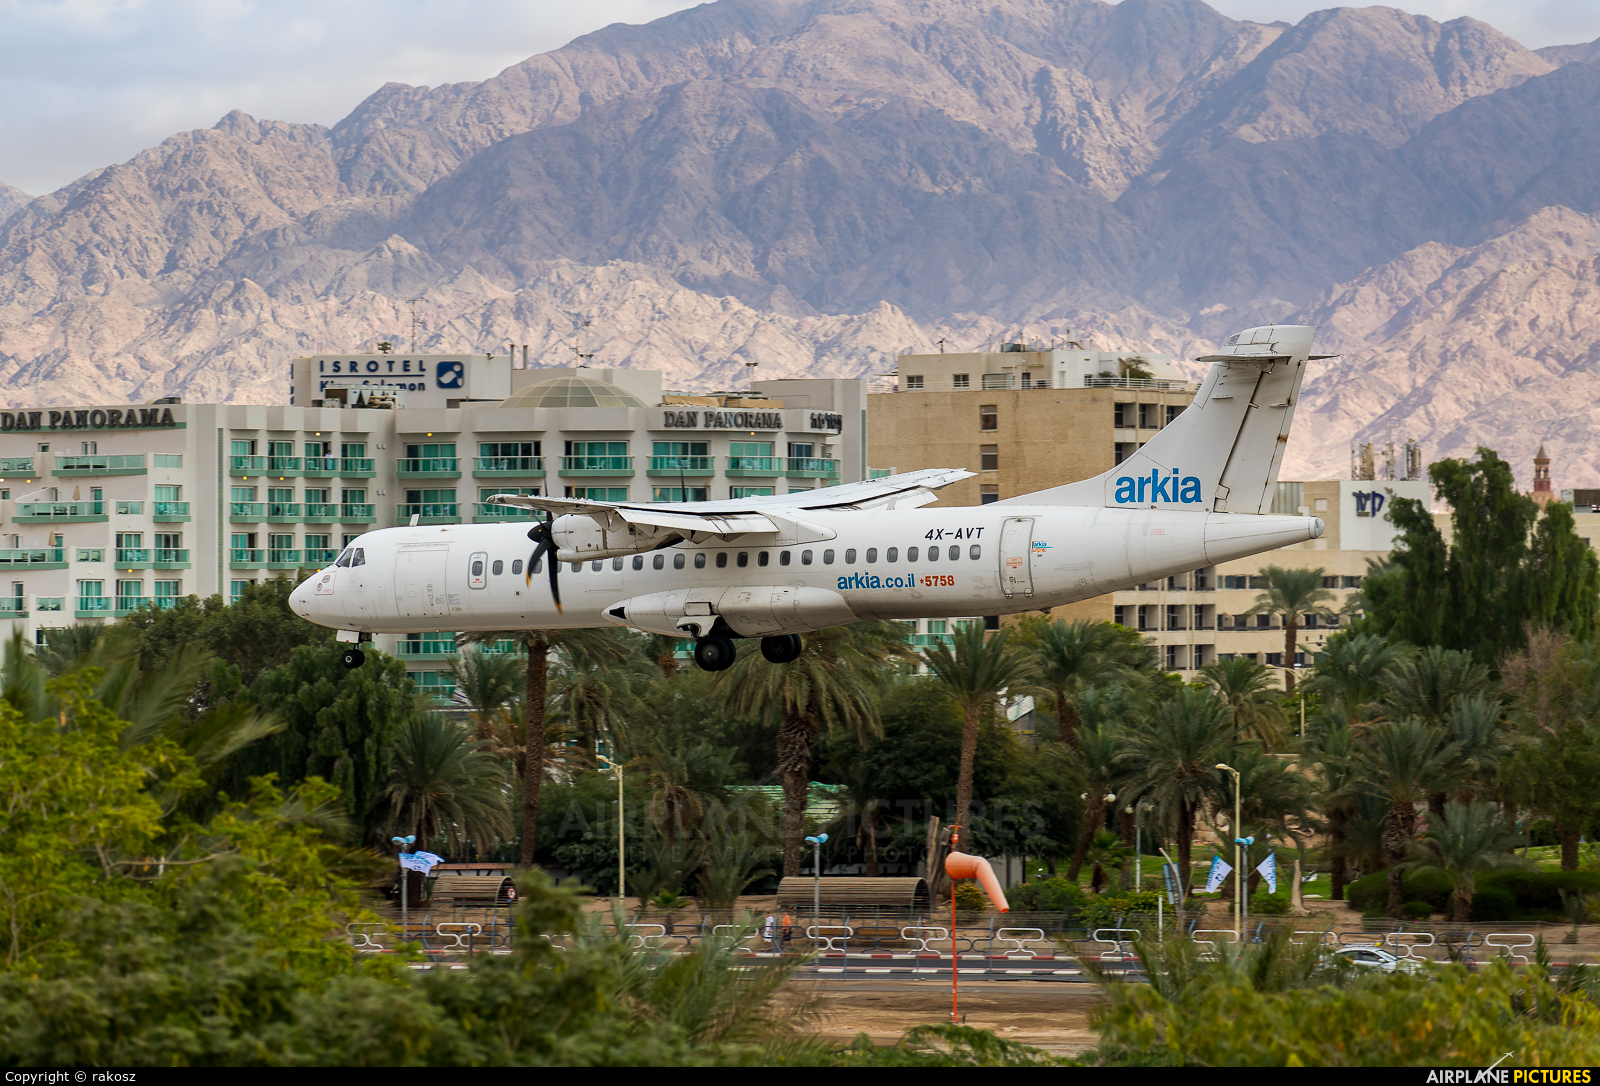 Arik Air 4X-AVT aircraft at Eilat - J. Hozman